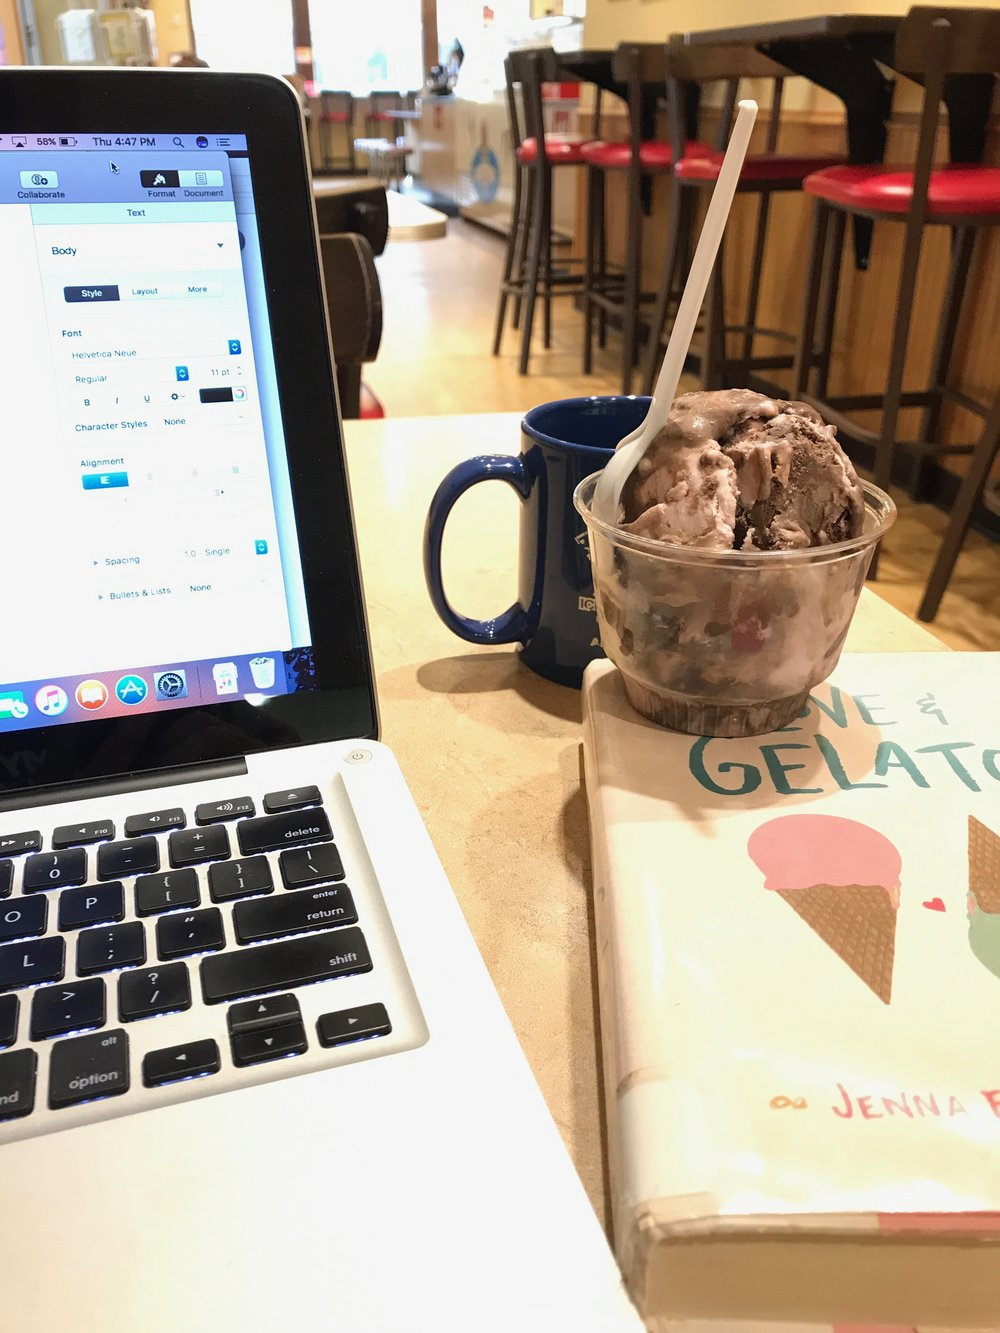 I just had to have a scoop of Razzmatazz while writing this review. Thanks,  Ellie's!